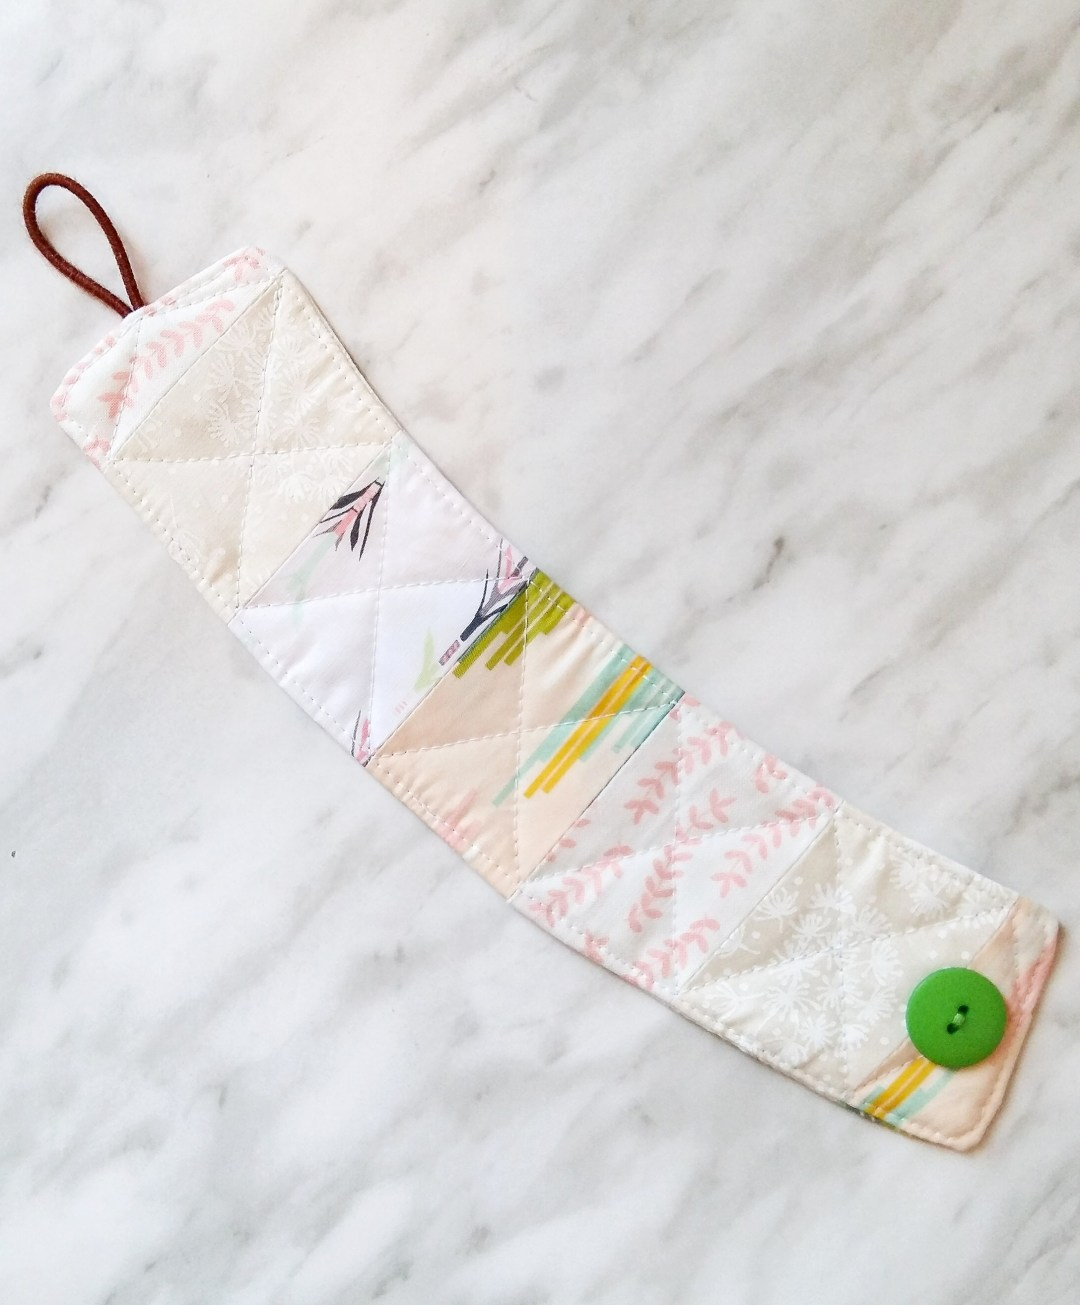 Quilted Fabric Coffee Cozy - Pretty and Functional! This quick DIY would be a great gift for mom!